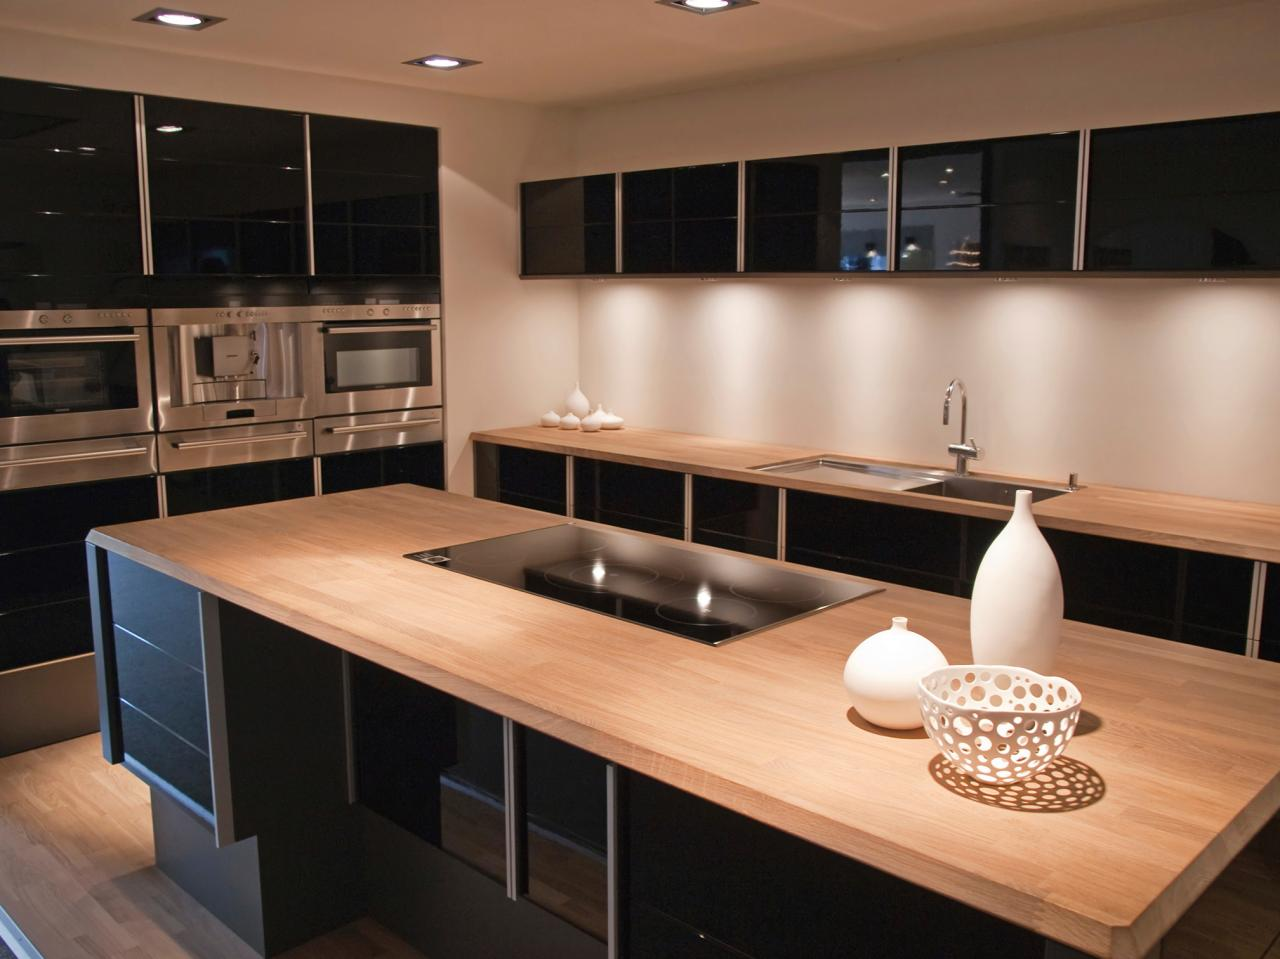 all about wood kitchen countertops you have to know wooden kitchen countertops Captivating Kitchen Furniture Using Modern Cabinet plus Stove and Microwave